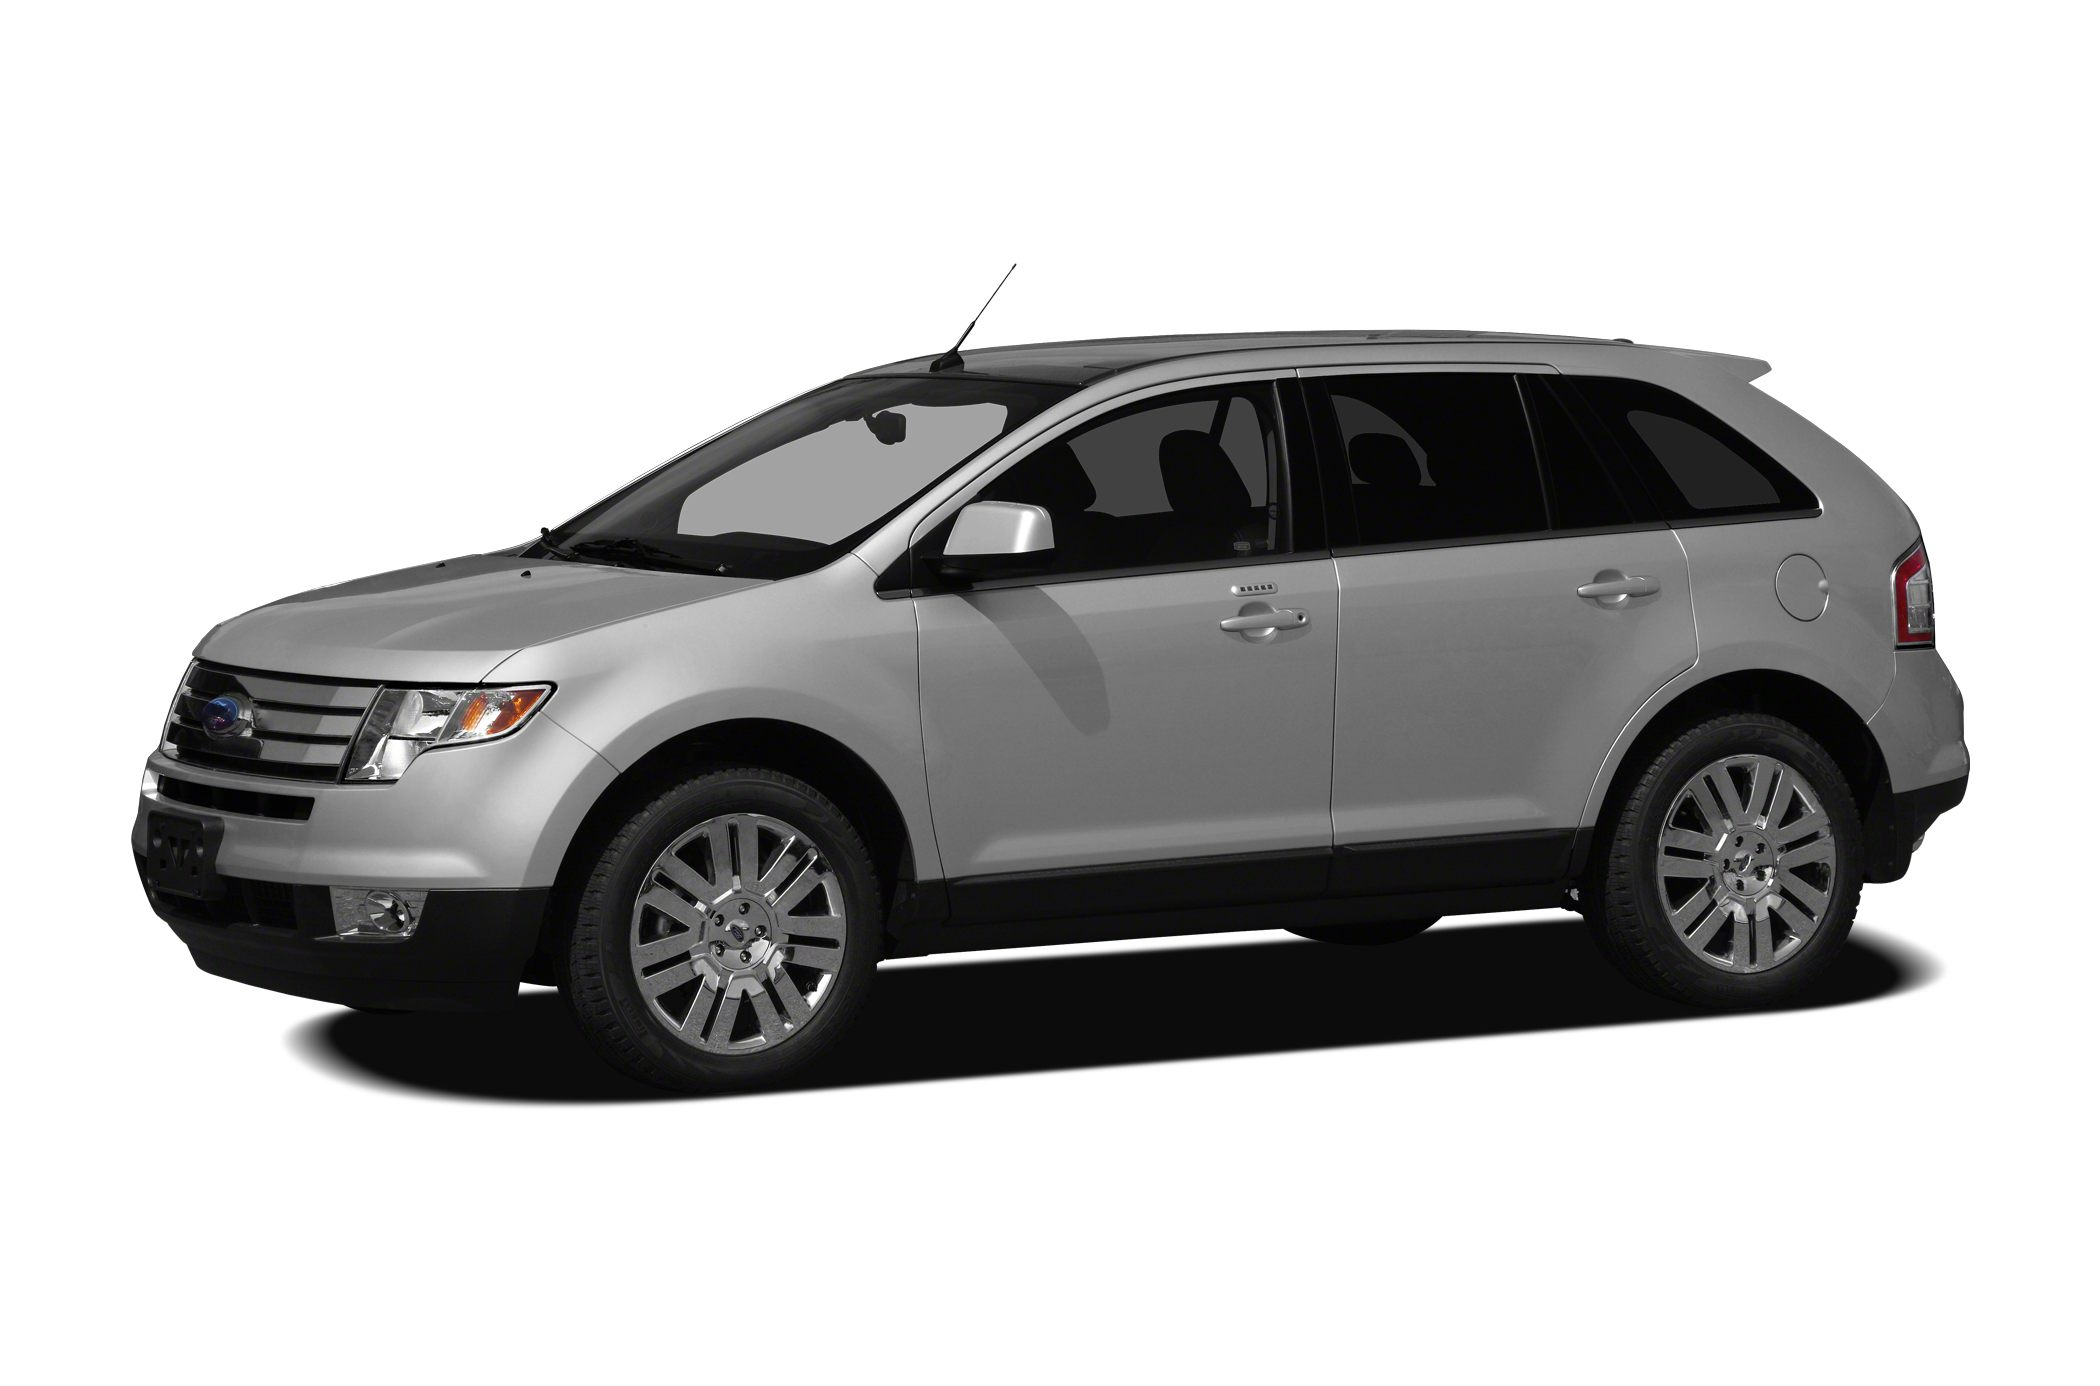 2010 Ford Edge SEL SUV for sale in Zanesville for $16,595 with 68,652 miles